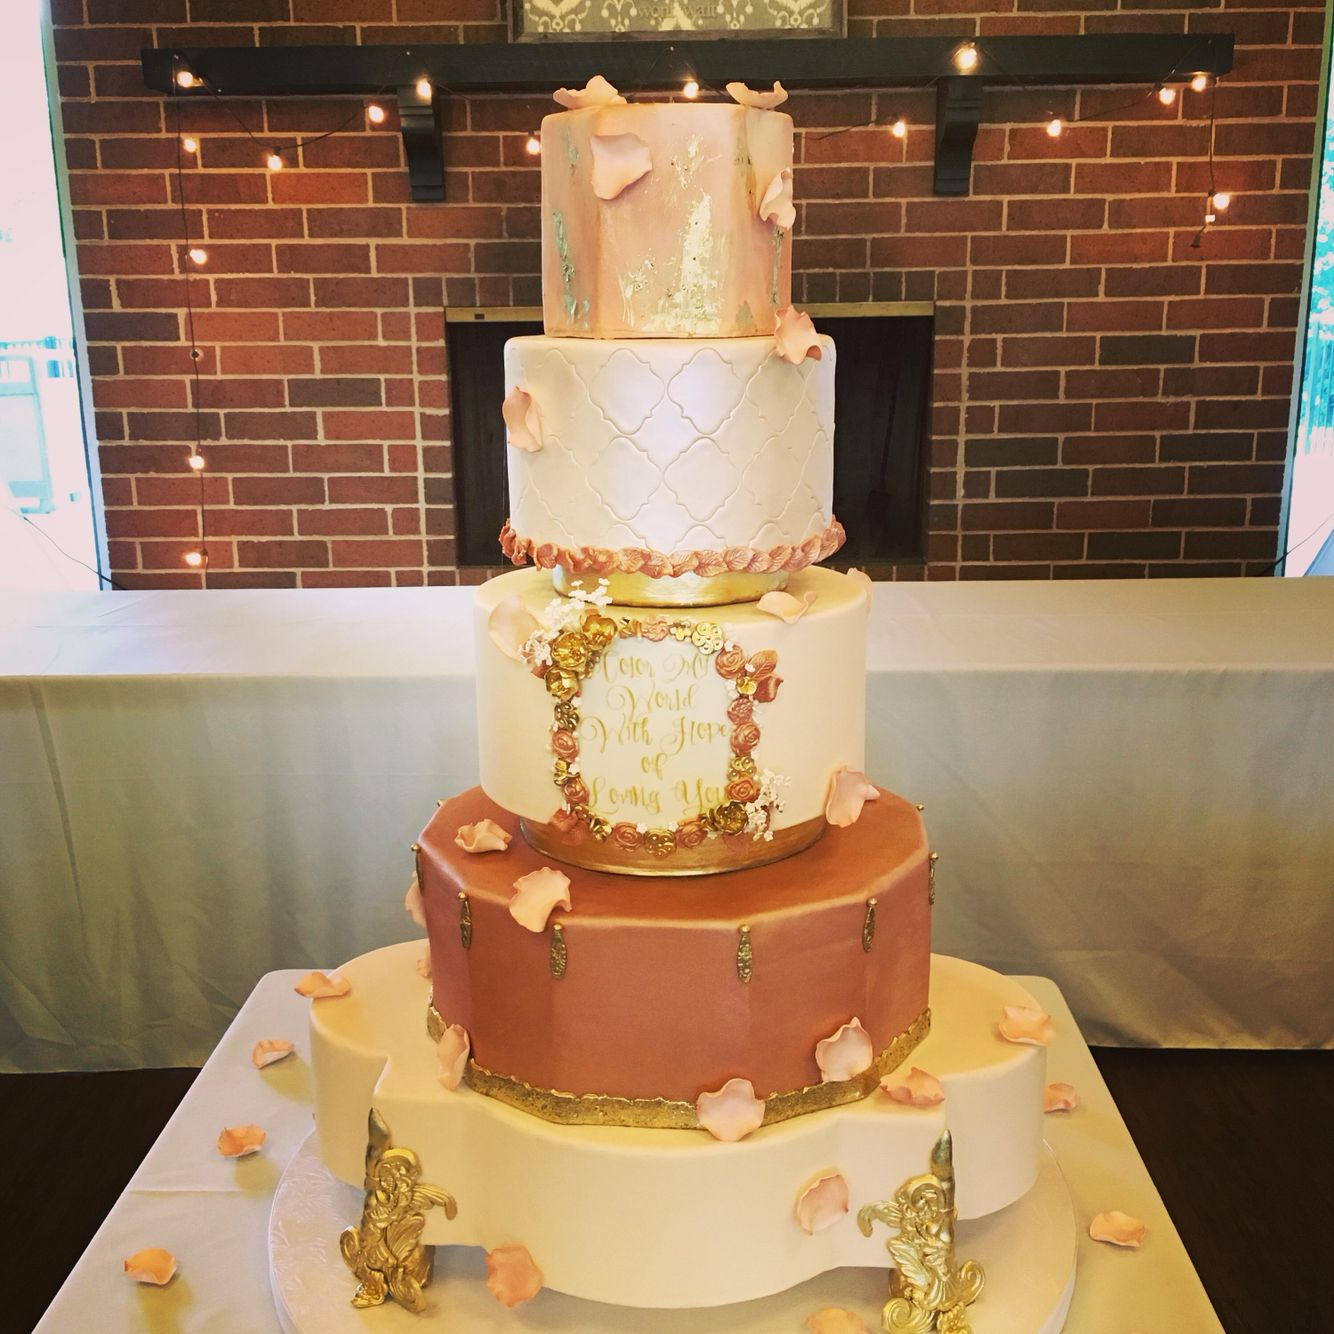 Stunning metallic rose gold, gold, and peach wedding cake -- floating on gold feet. Look at the detail in the tiny flower frame with the sweet sentiment.